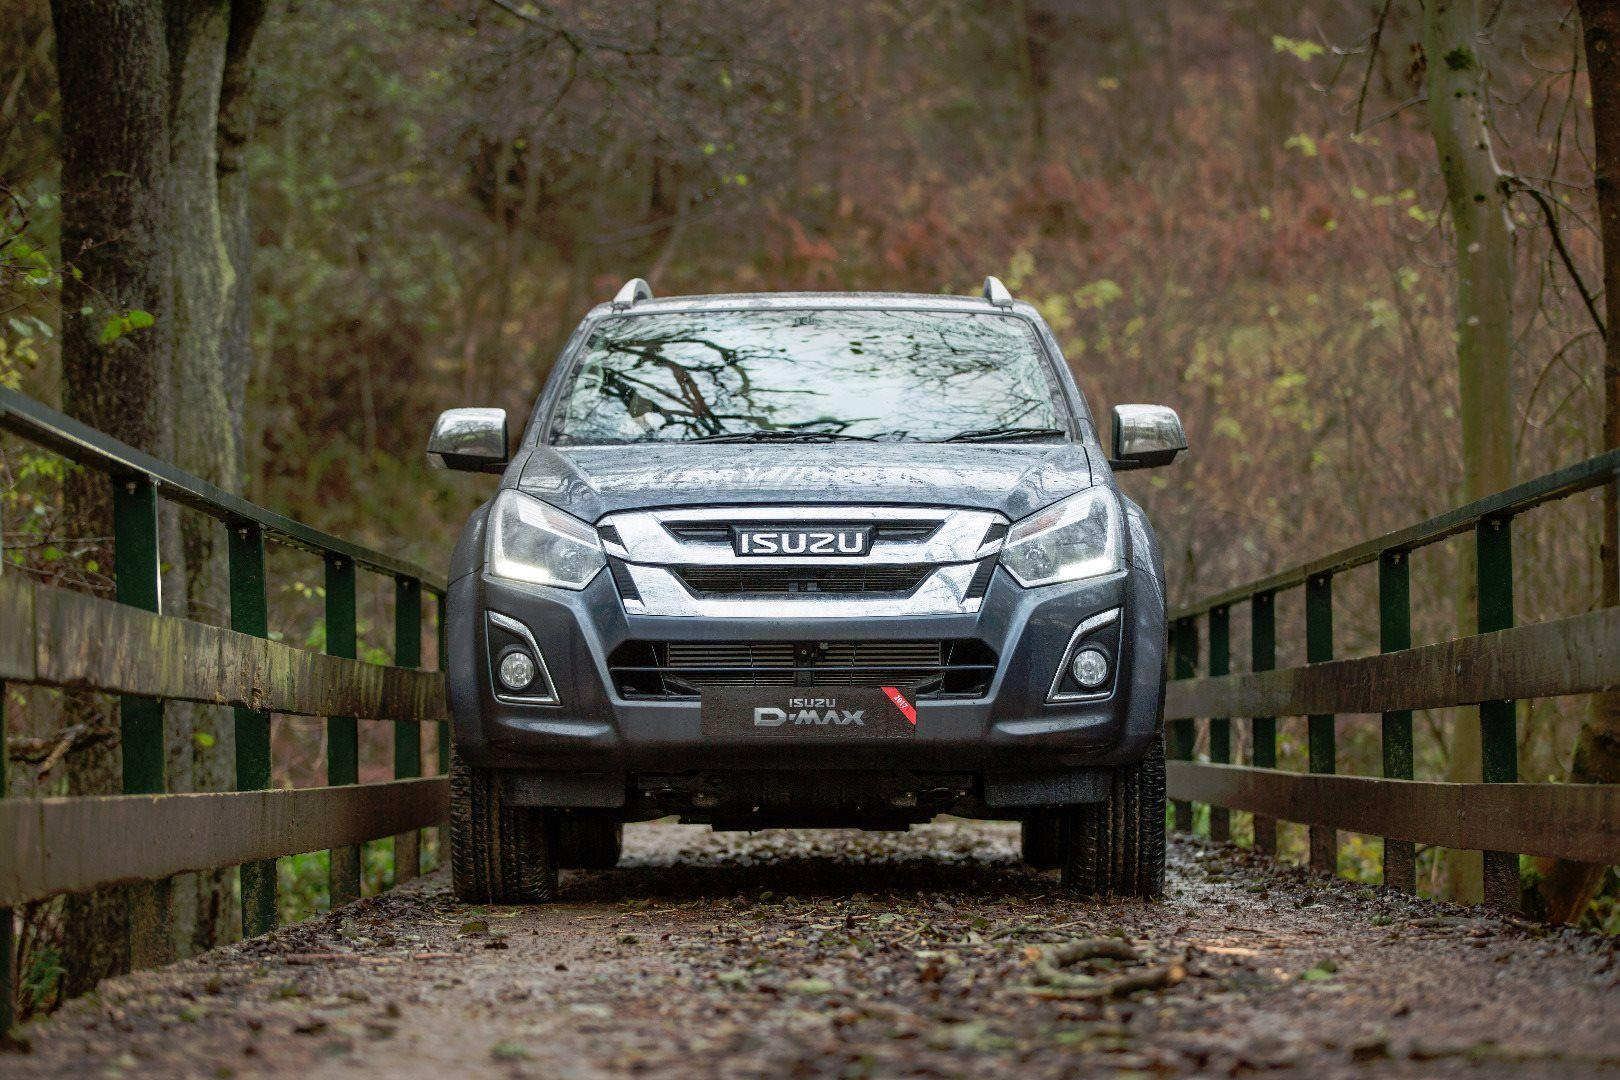 ISUZU UK STRENGTHENS ITS NETWORK WITH FIVE NEW FRANCHISE OPENINGS